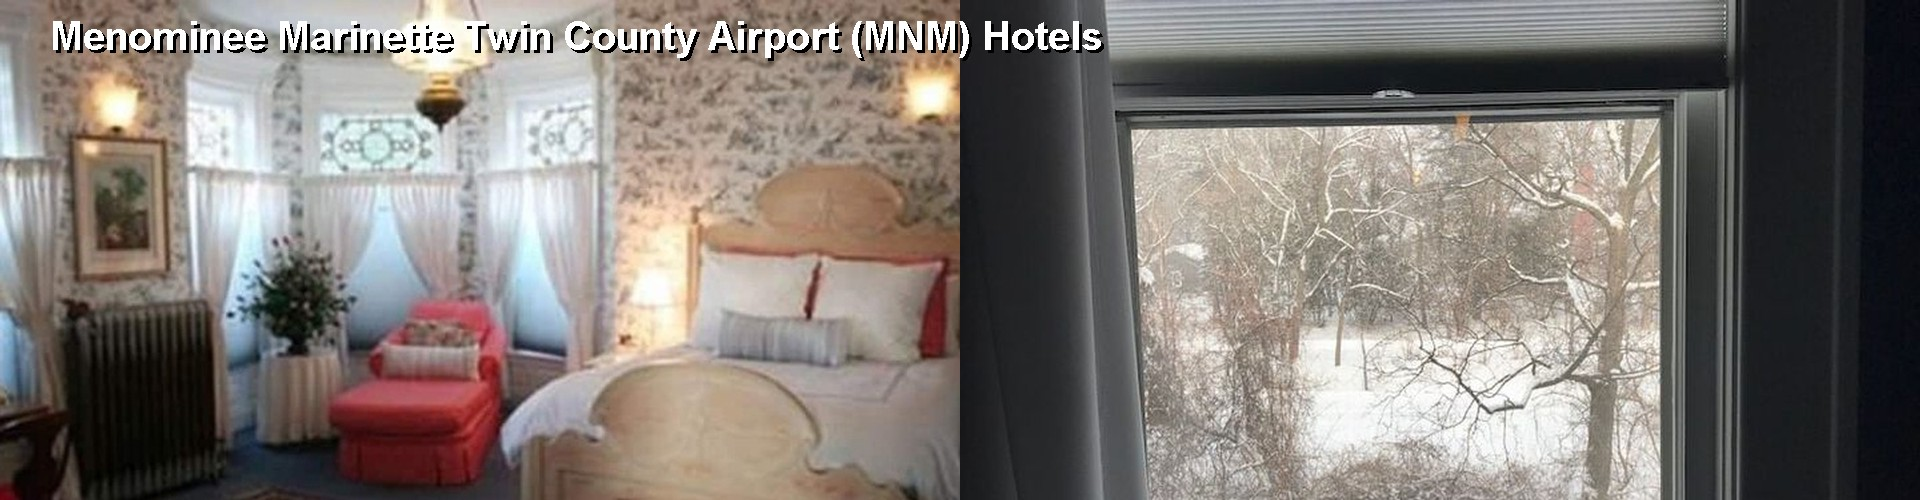 5 Best Hotels near Menominee Marinette Twin County Airport (MNM)